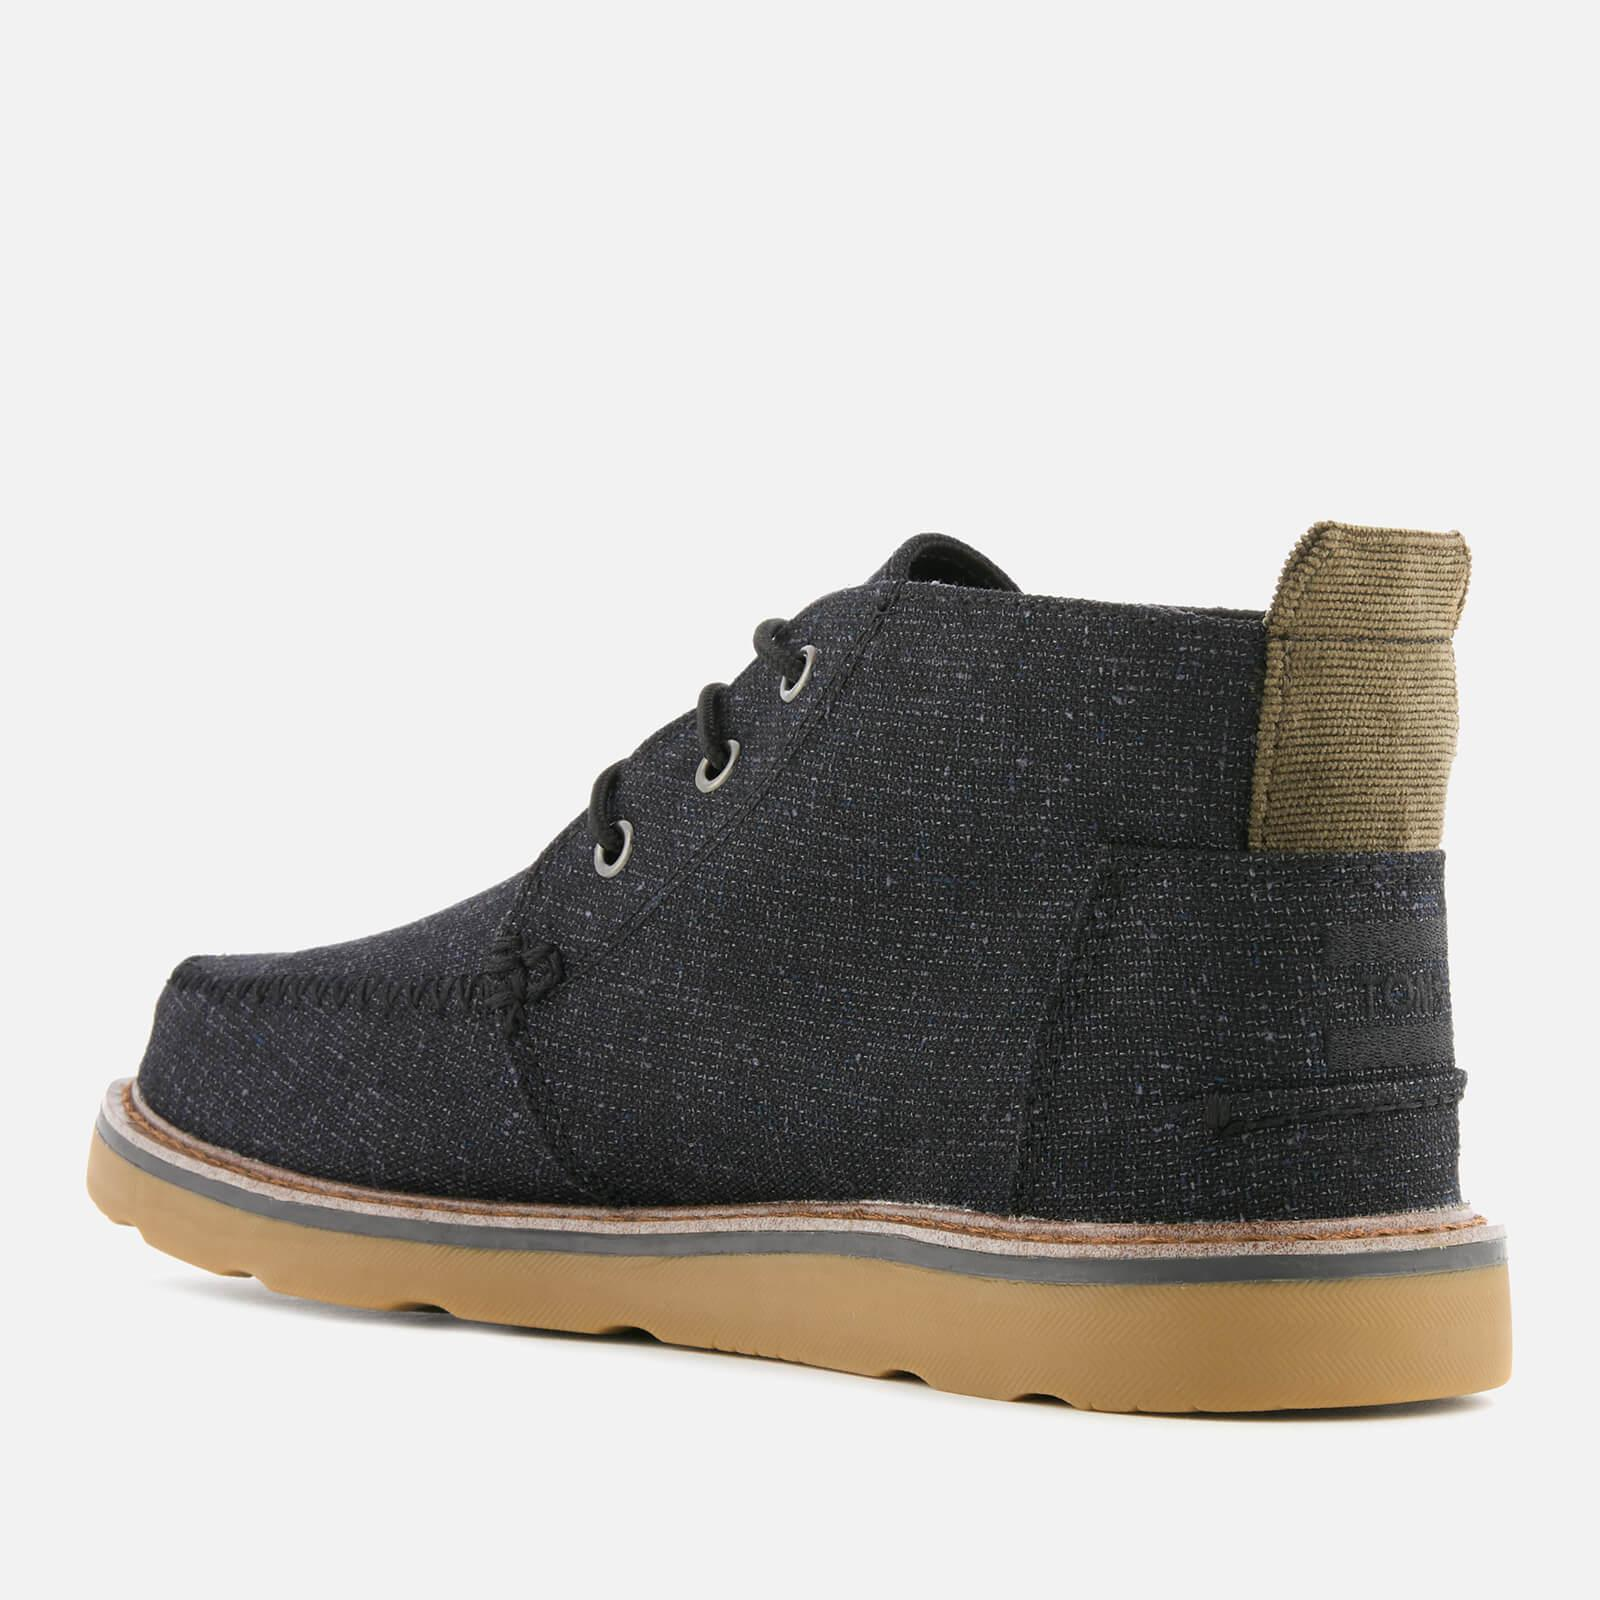 0e870b74af725 TOMS - Black Woven Chukka Boots for Men - Lyst. View fullscreen